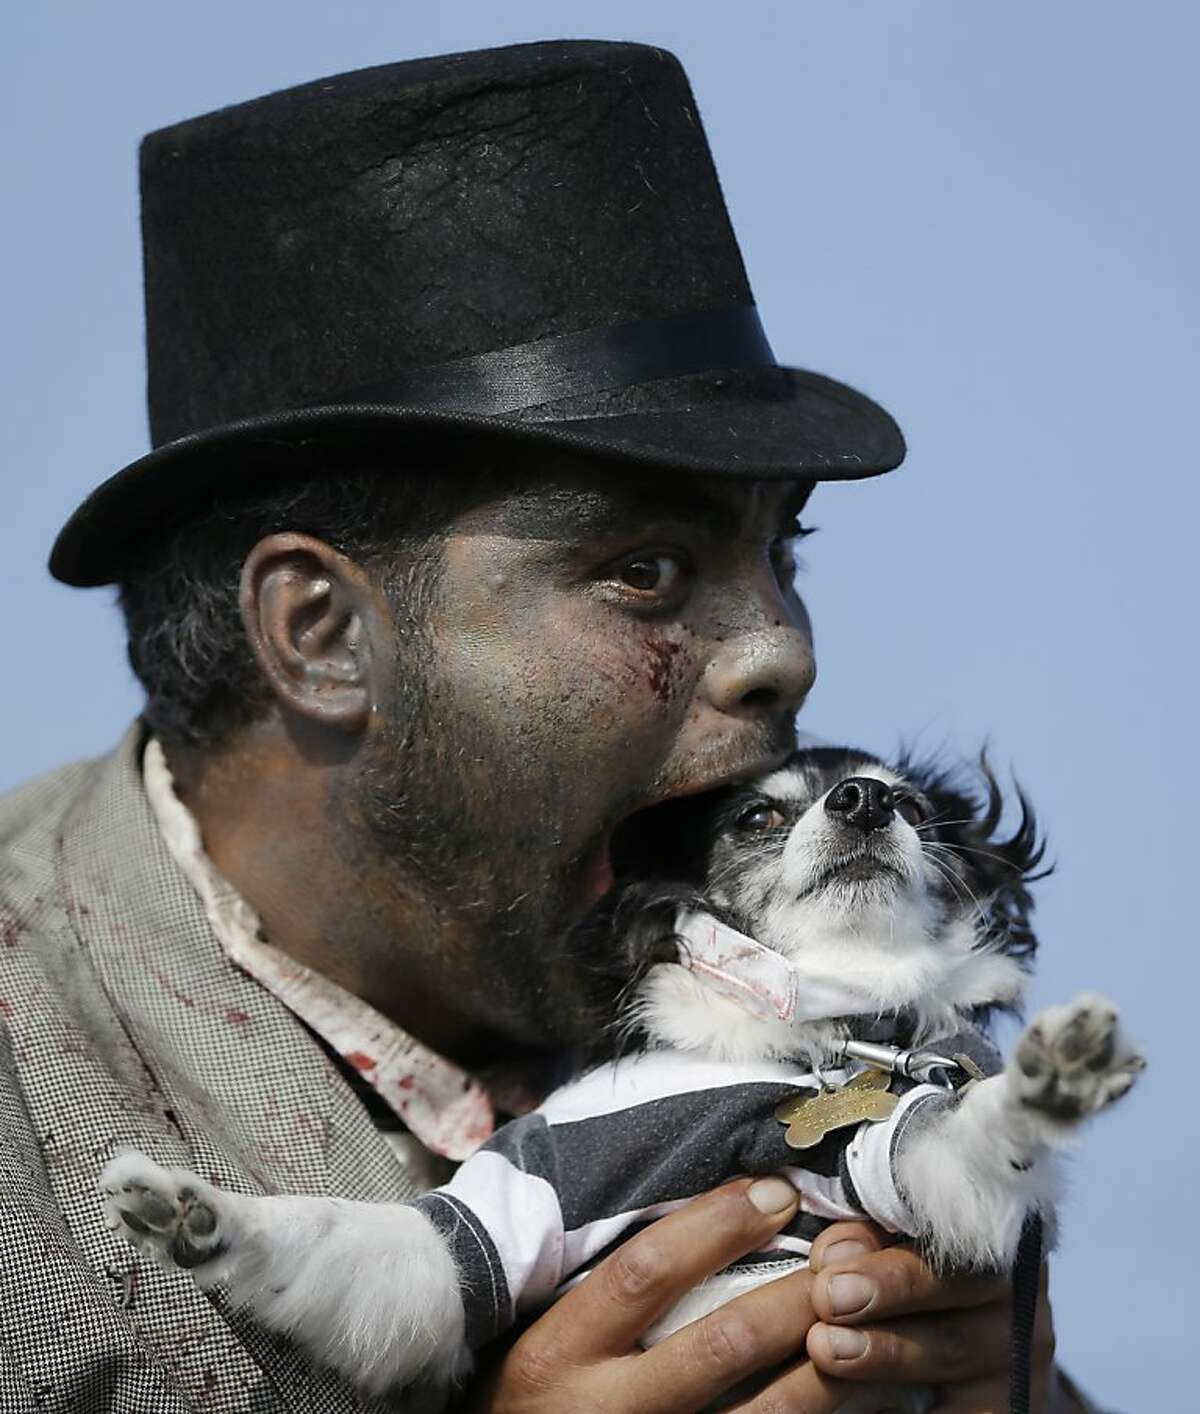 Can I have a bite of your dog? Zeke Forbes, zombie, pretends to munch on Ziggy on the boardwalk in Asbury Park, N.J. According to Guinness World Record adjudicator Michael Empric, 9,592 zombies staggered to a new record for largest zombie walk.